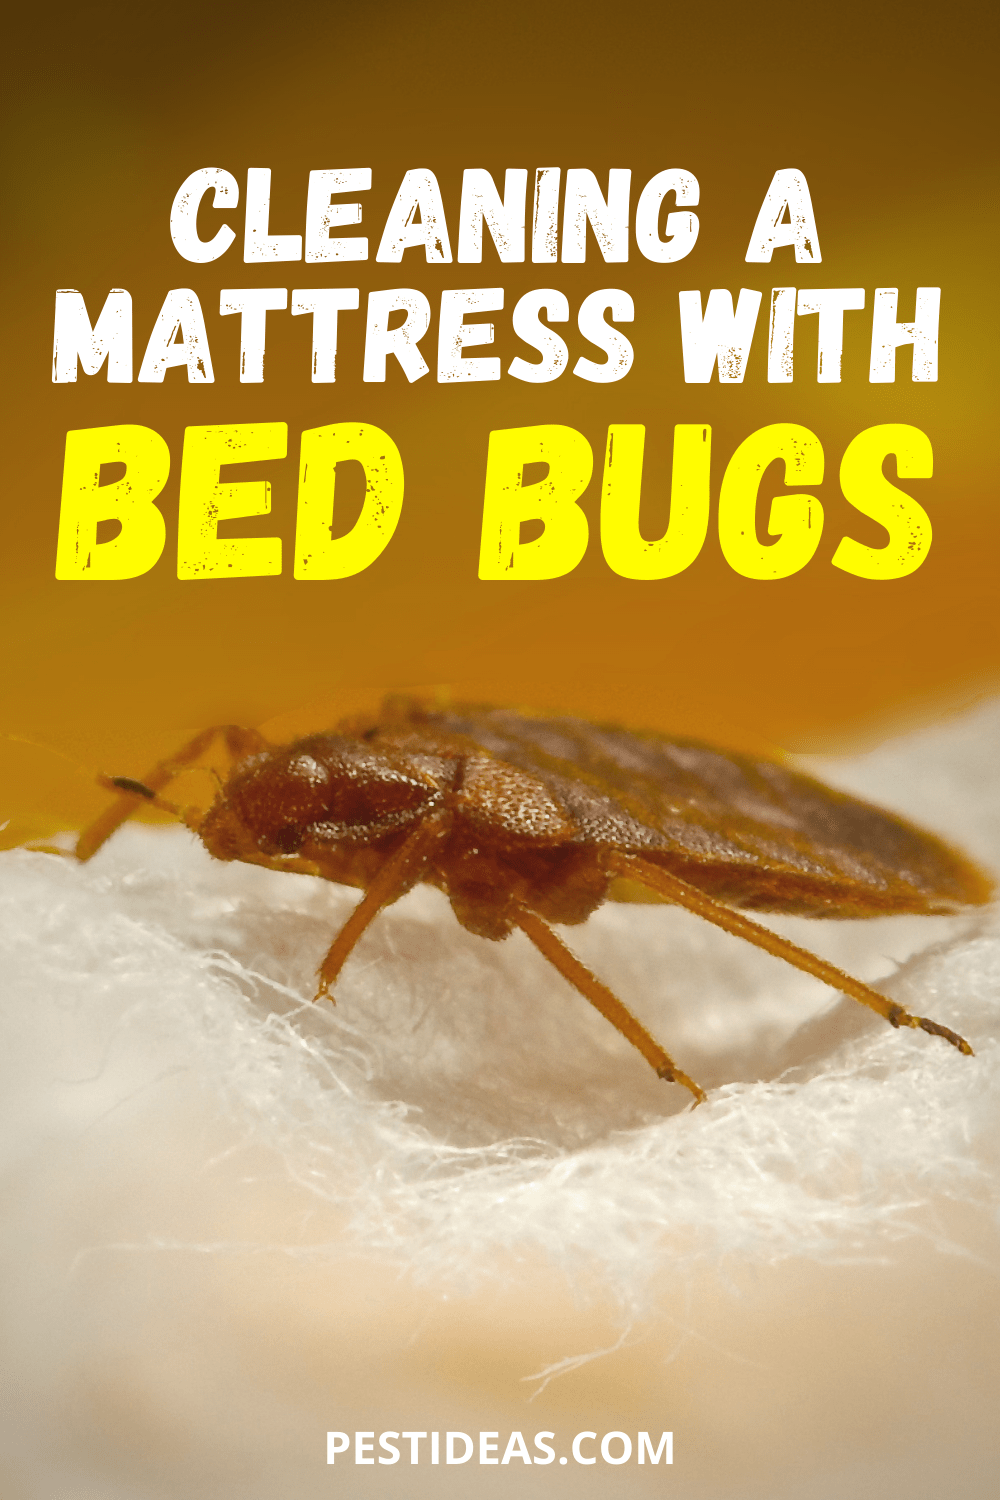 Cleaning a Mattress With Bed Bugs in 2020 Bed bugs, Rid